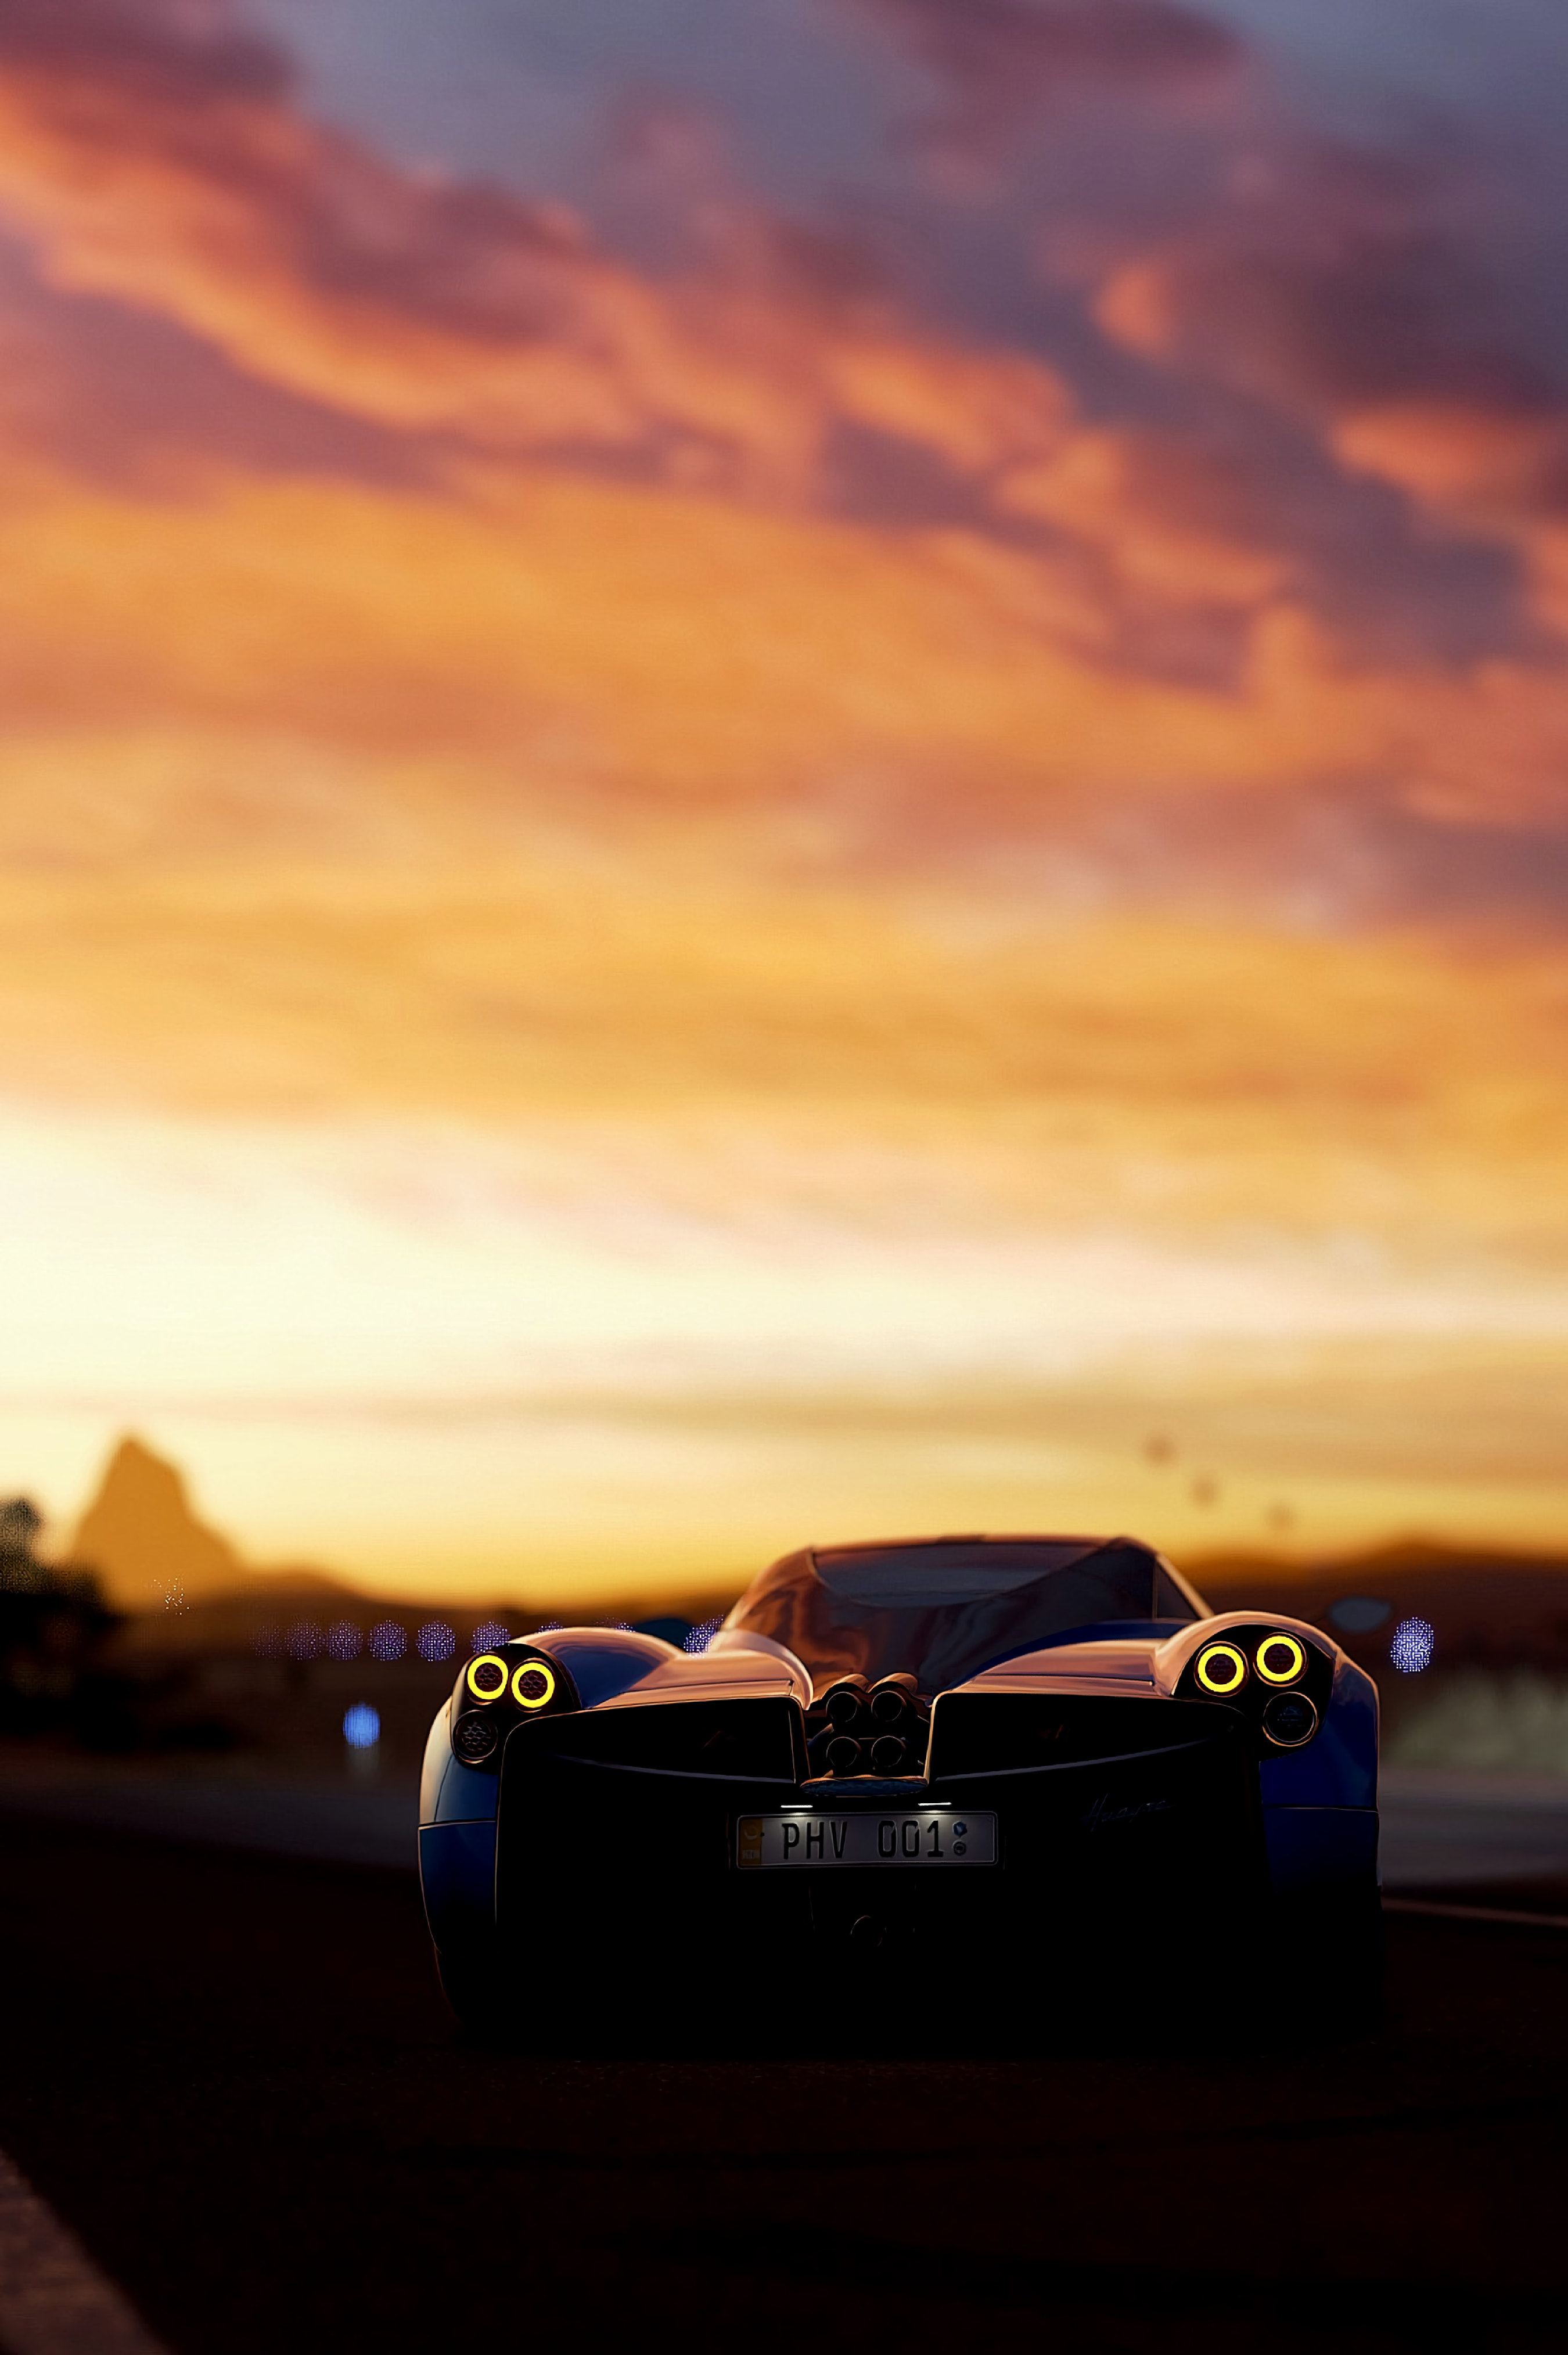 152240 download wallpaper Sports, Races, Pagani, Cars, Sports Car, Back View, Rear View, Pagani Huayra screensavers and pictures for free